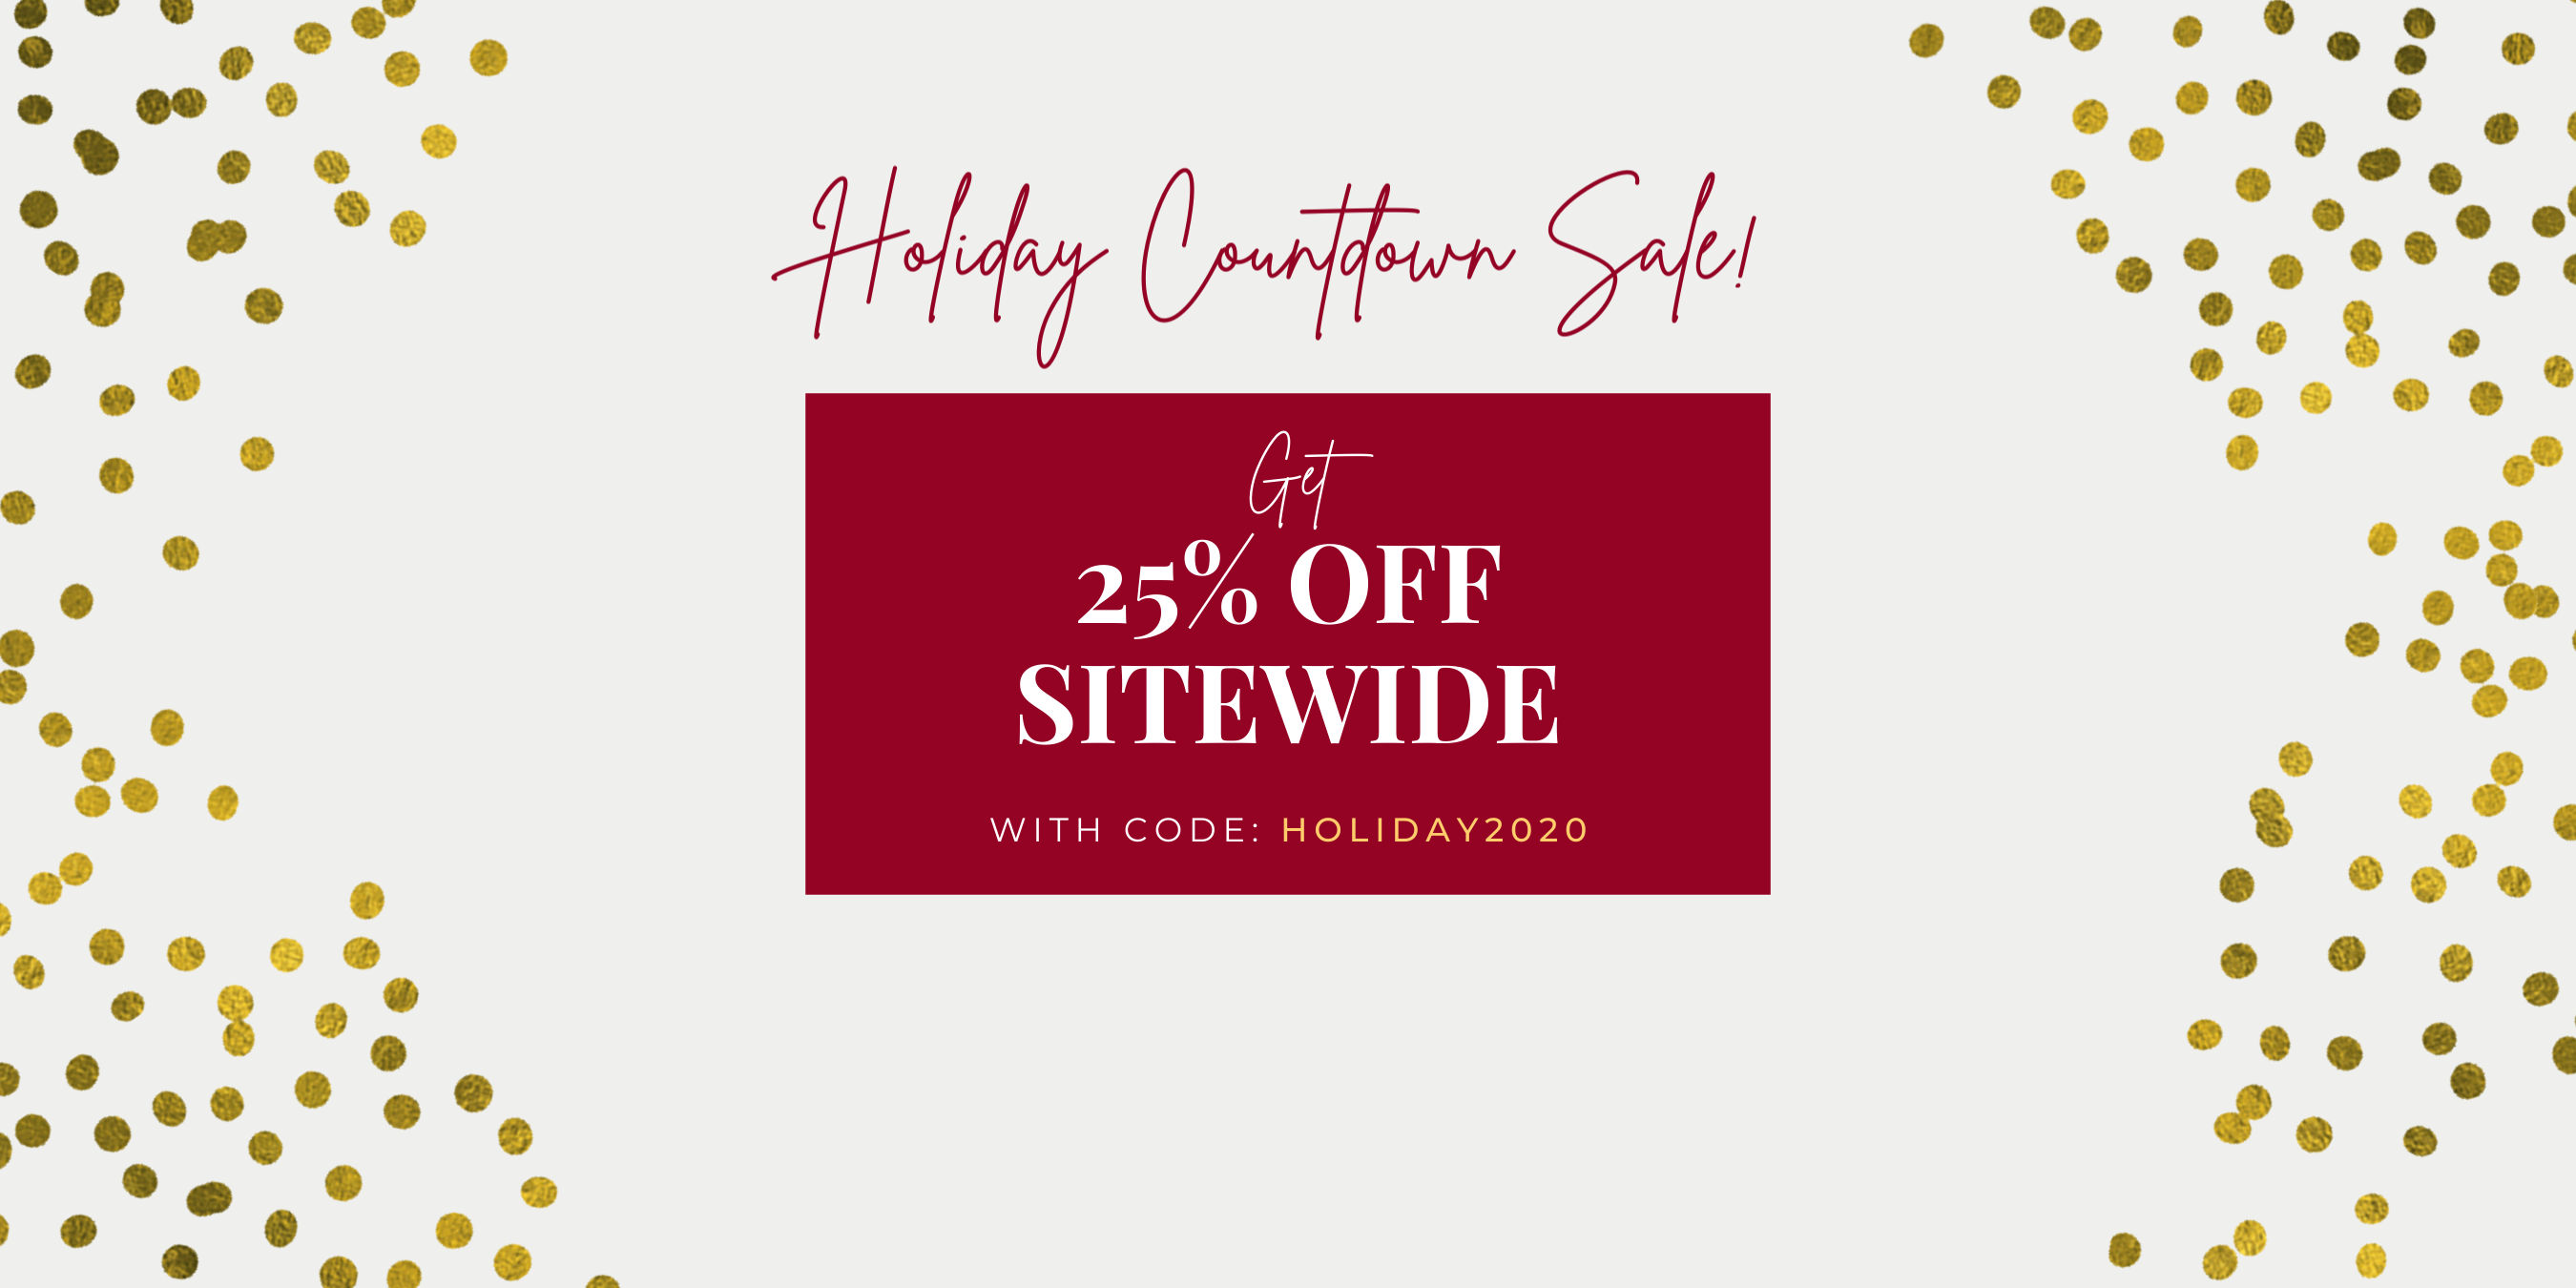 Holiday Sale 2020